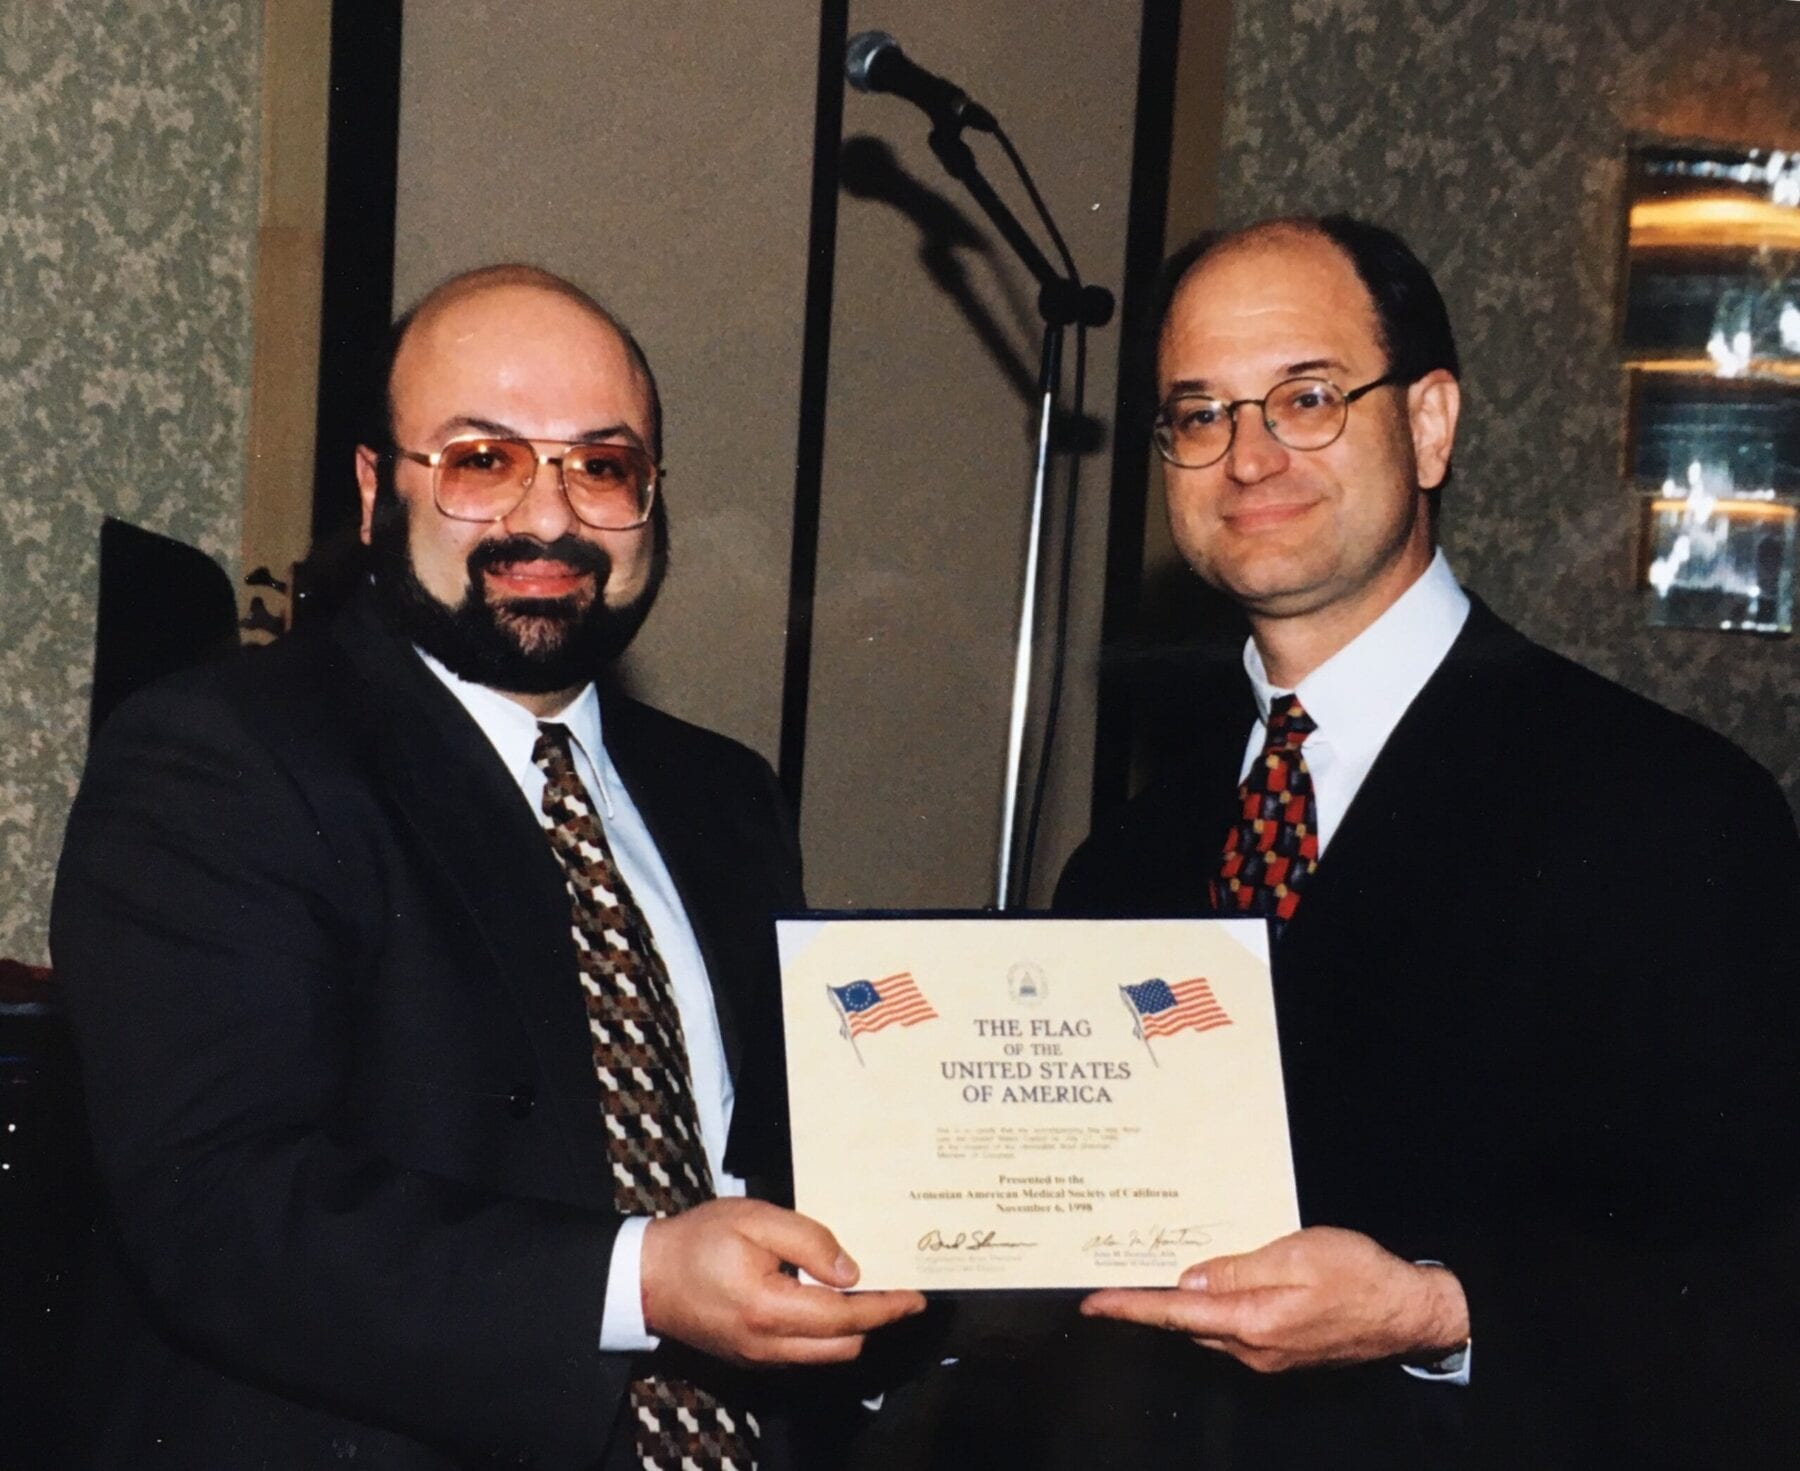 Dr. David Davtyan Receiving Commendation From U.S. Congressman Brad Sherman In Los Angeles